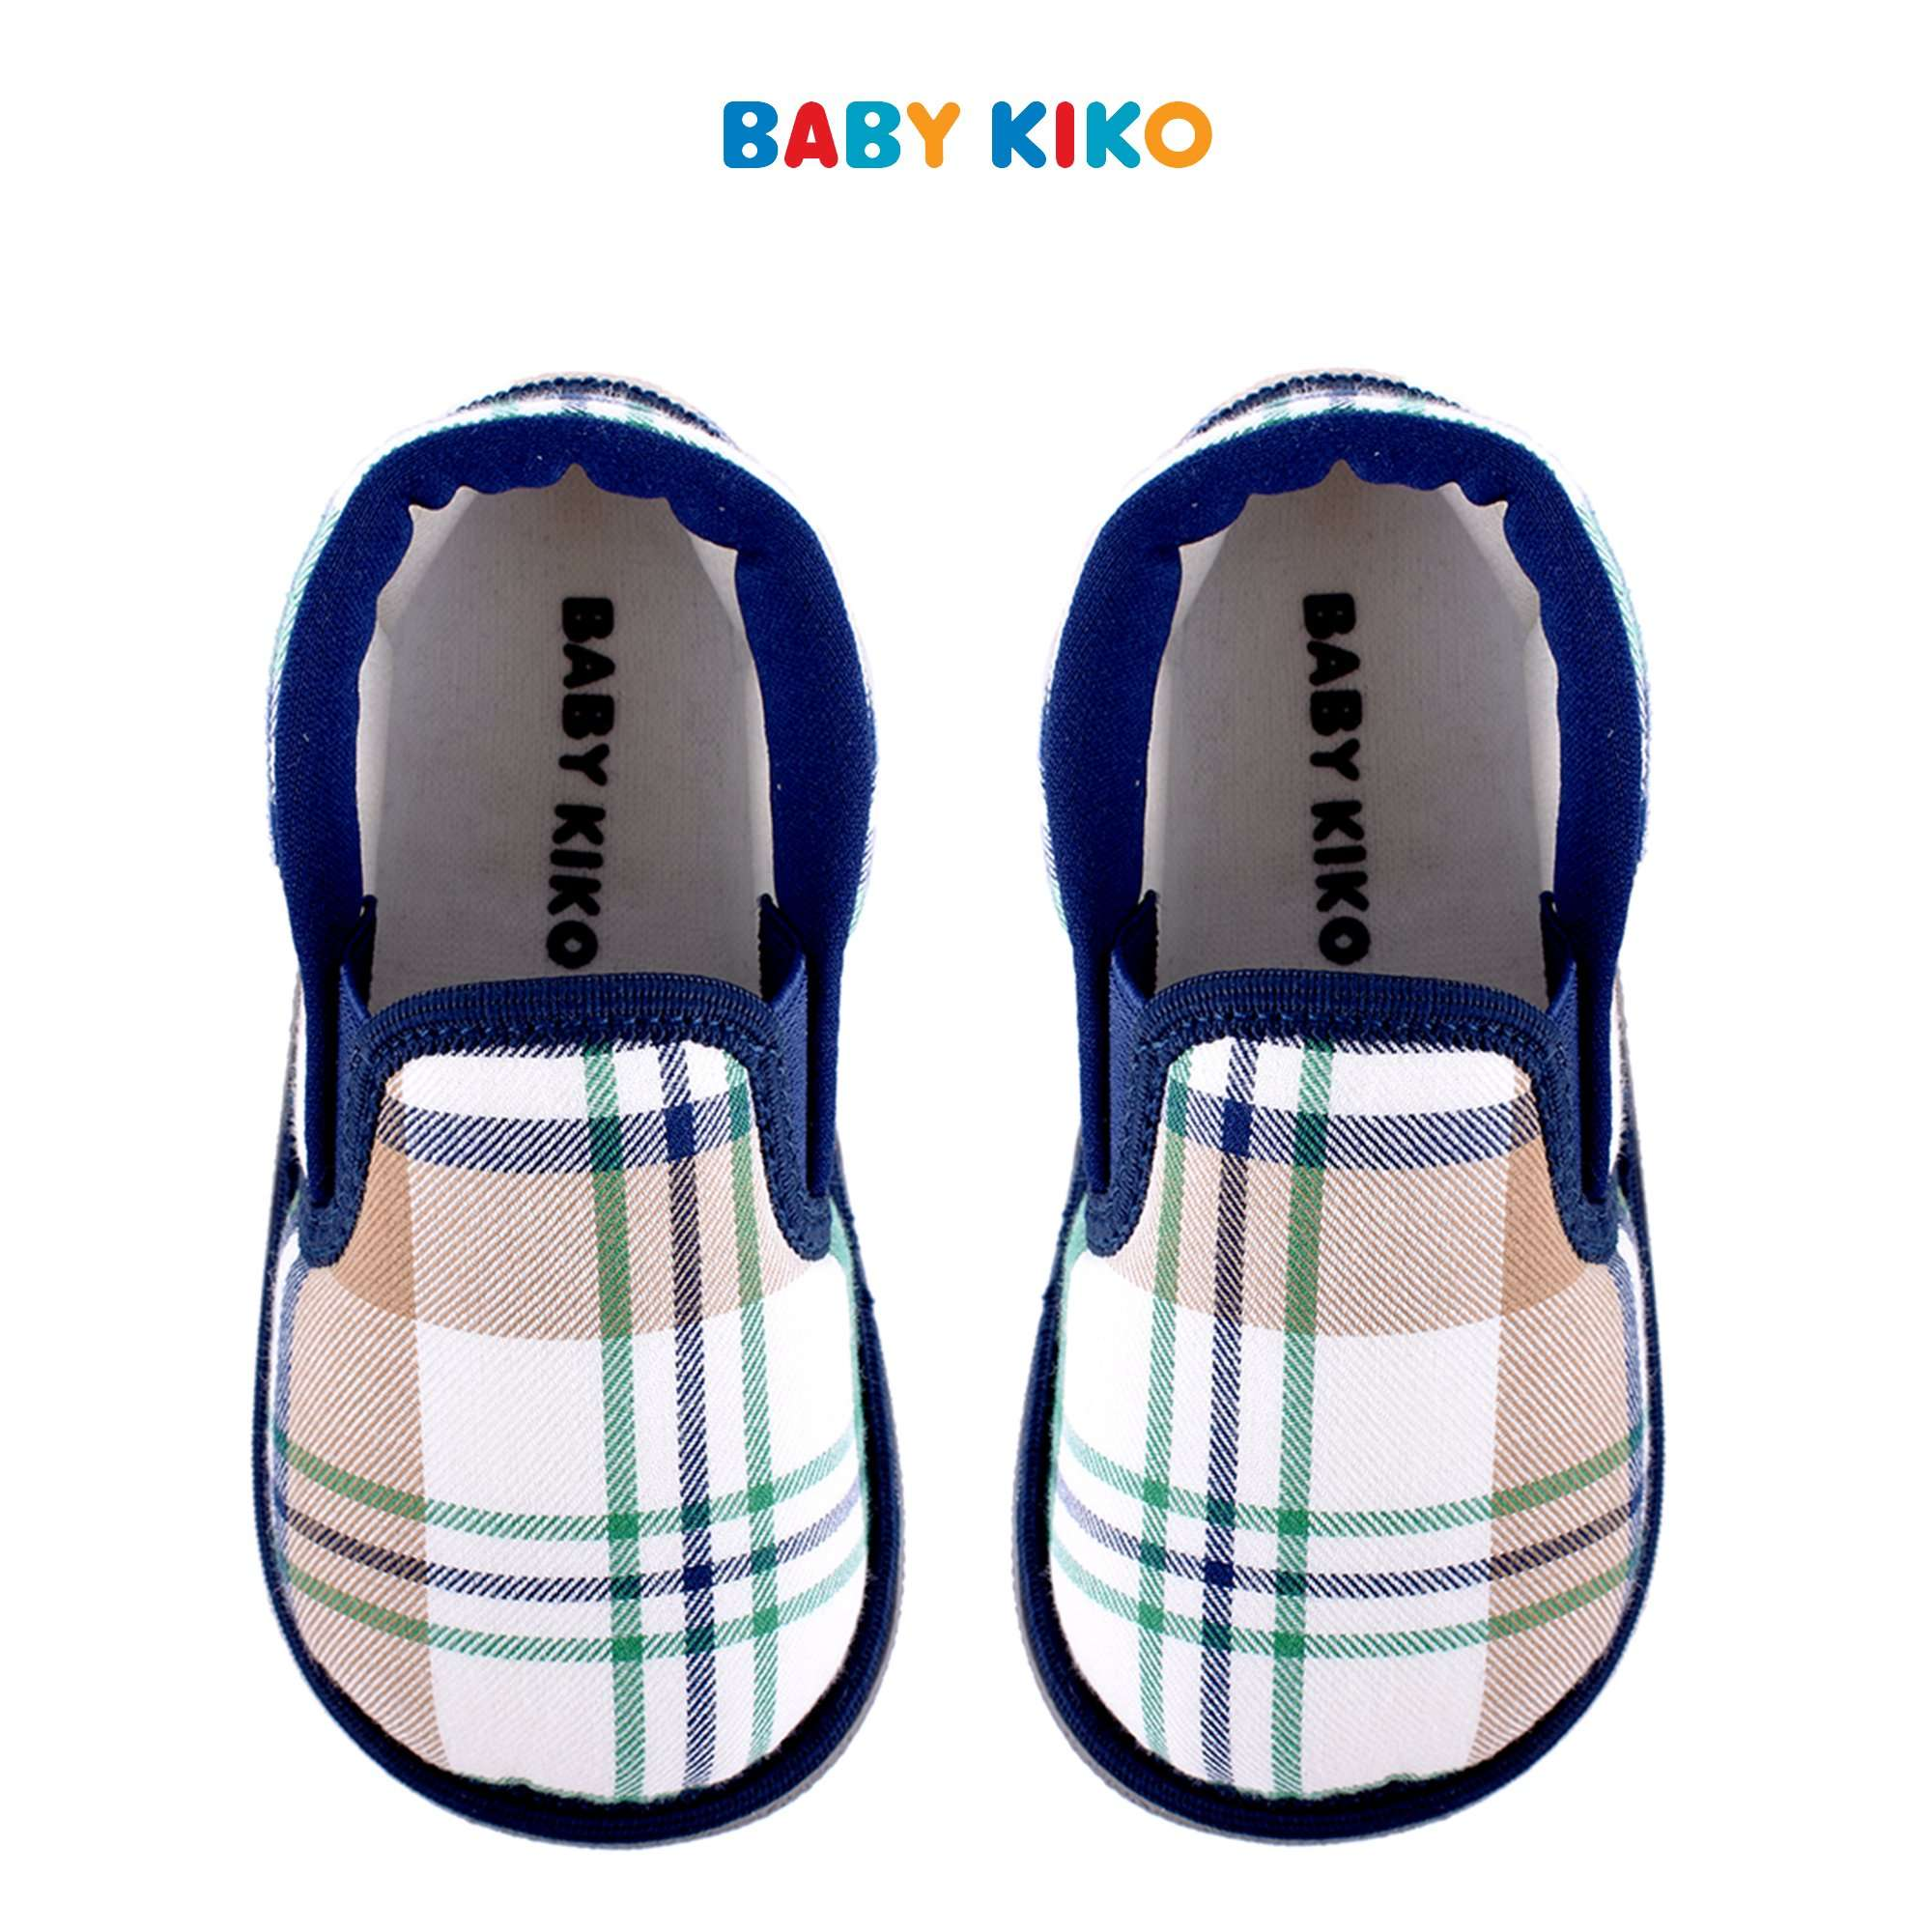 Baby KIKO Toddler Boy Textile Shoes - Green B922106-5088-N5 : Buy Baby KIKO online at CMG.MY